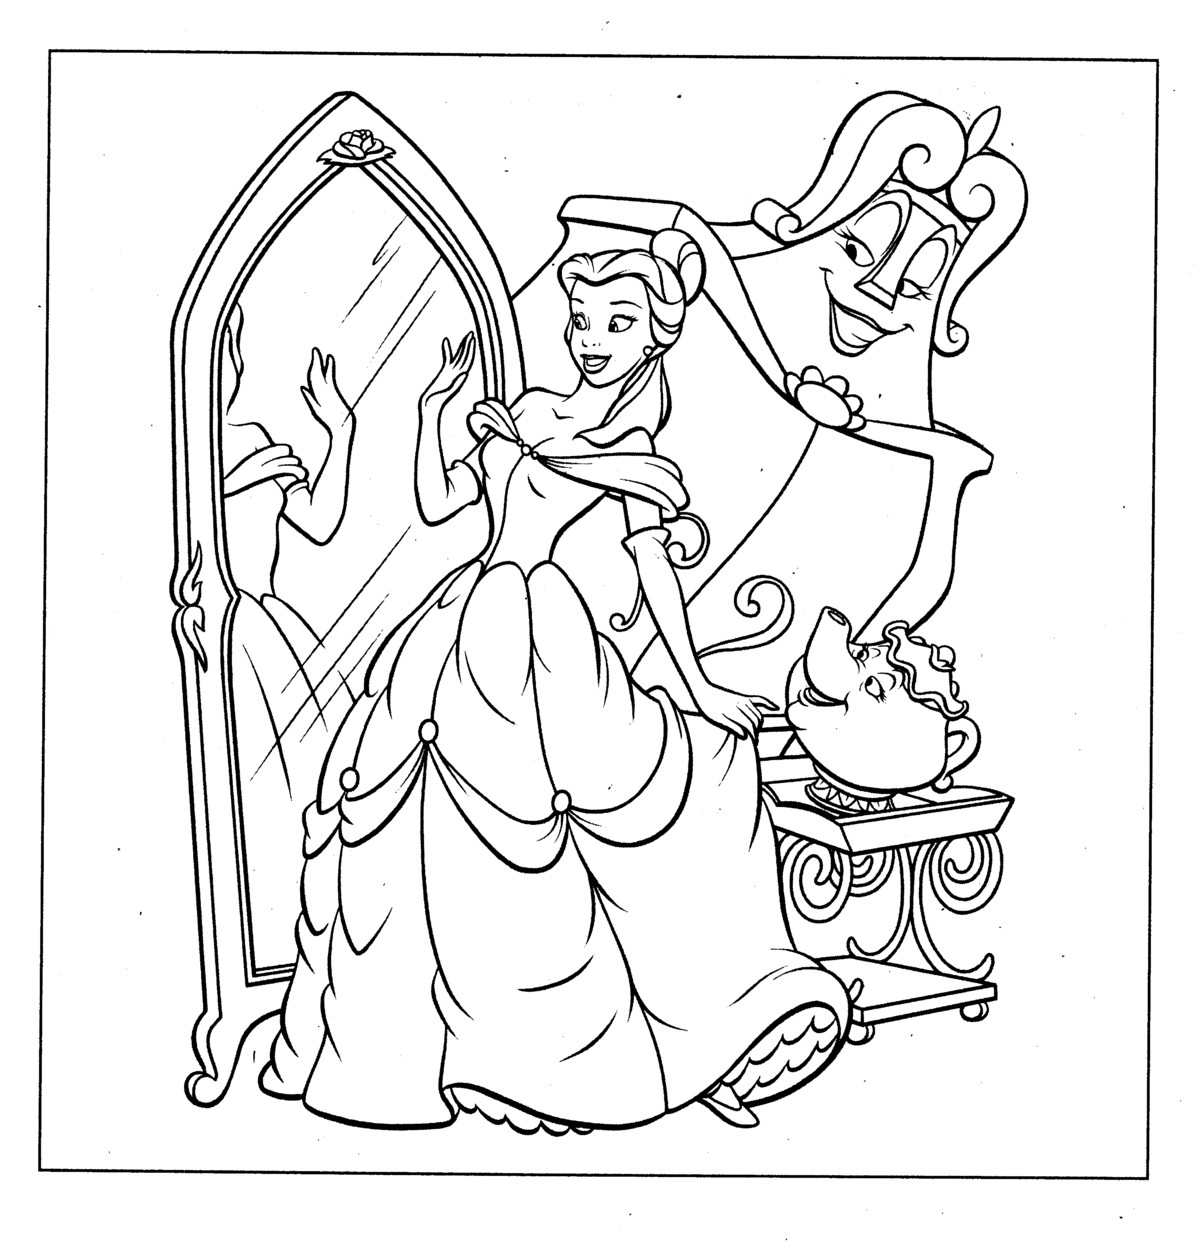 belle coloring page - Printable Coloring Pages Kids